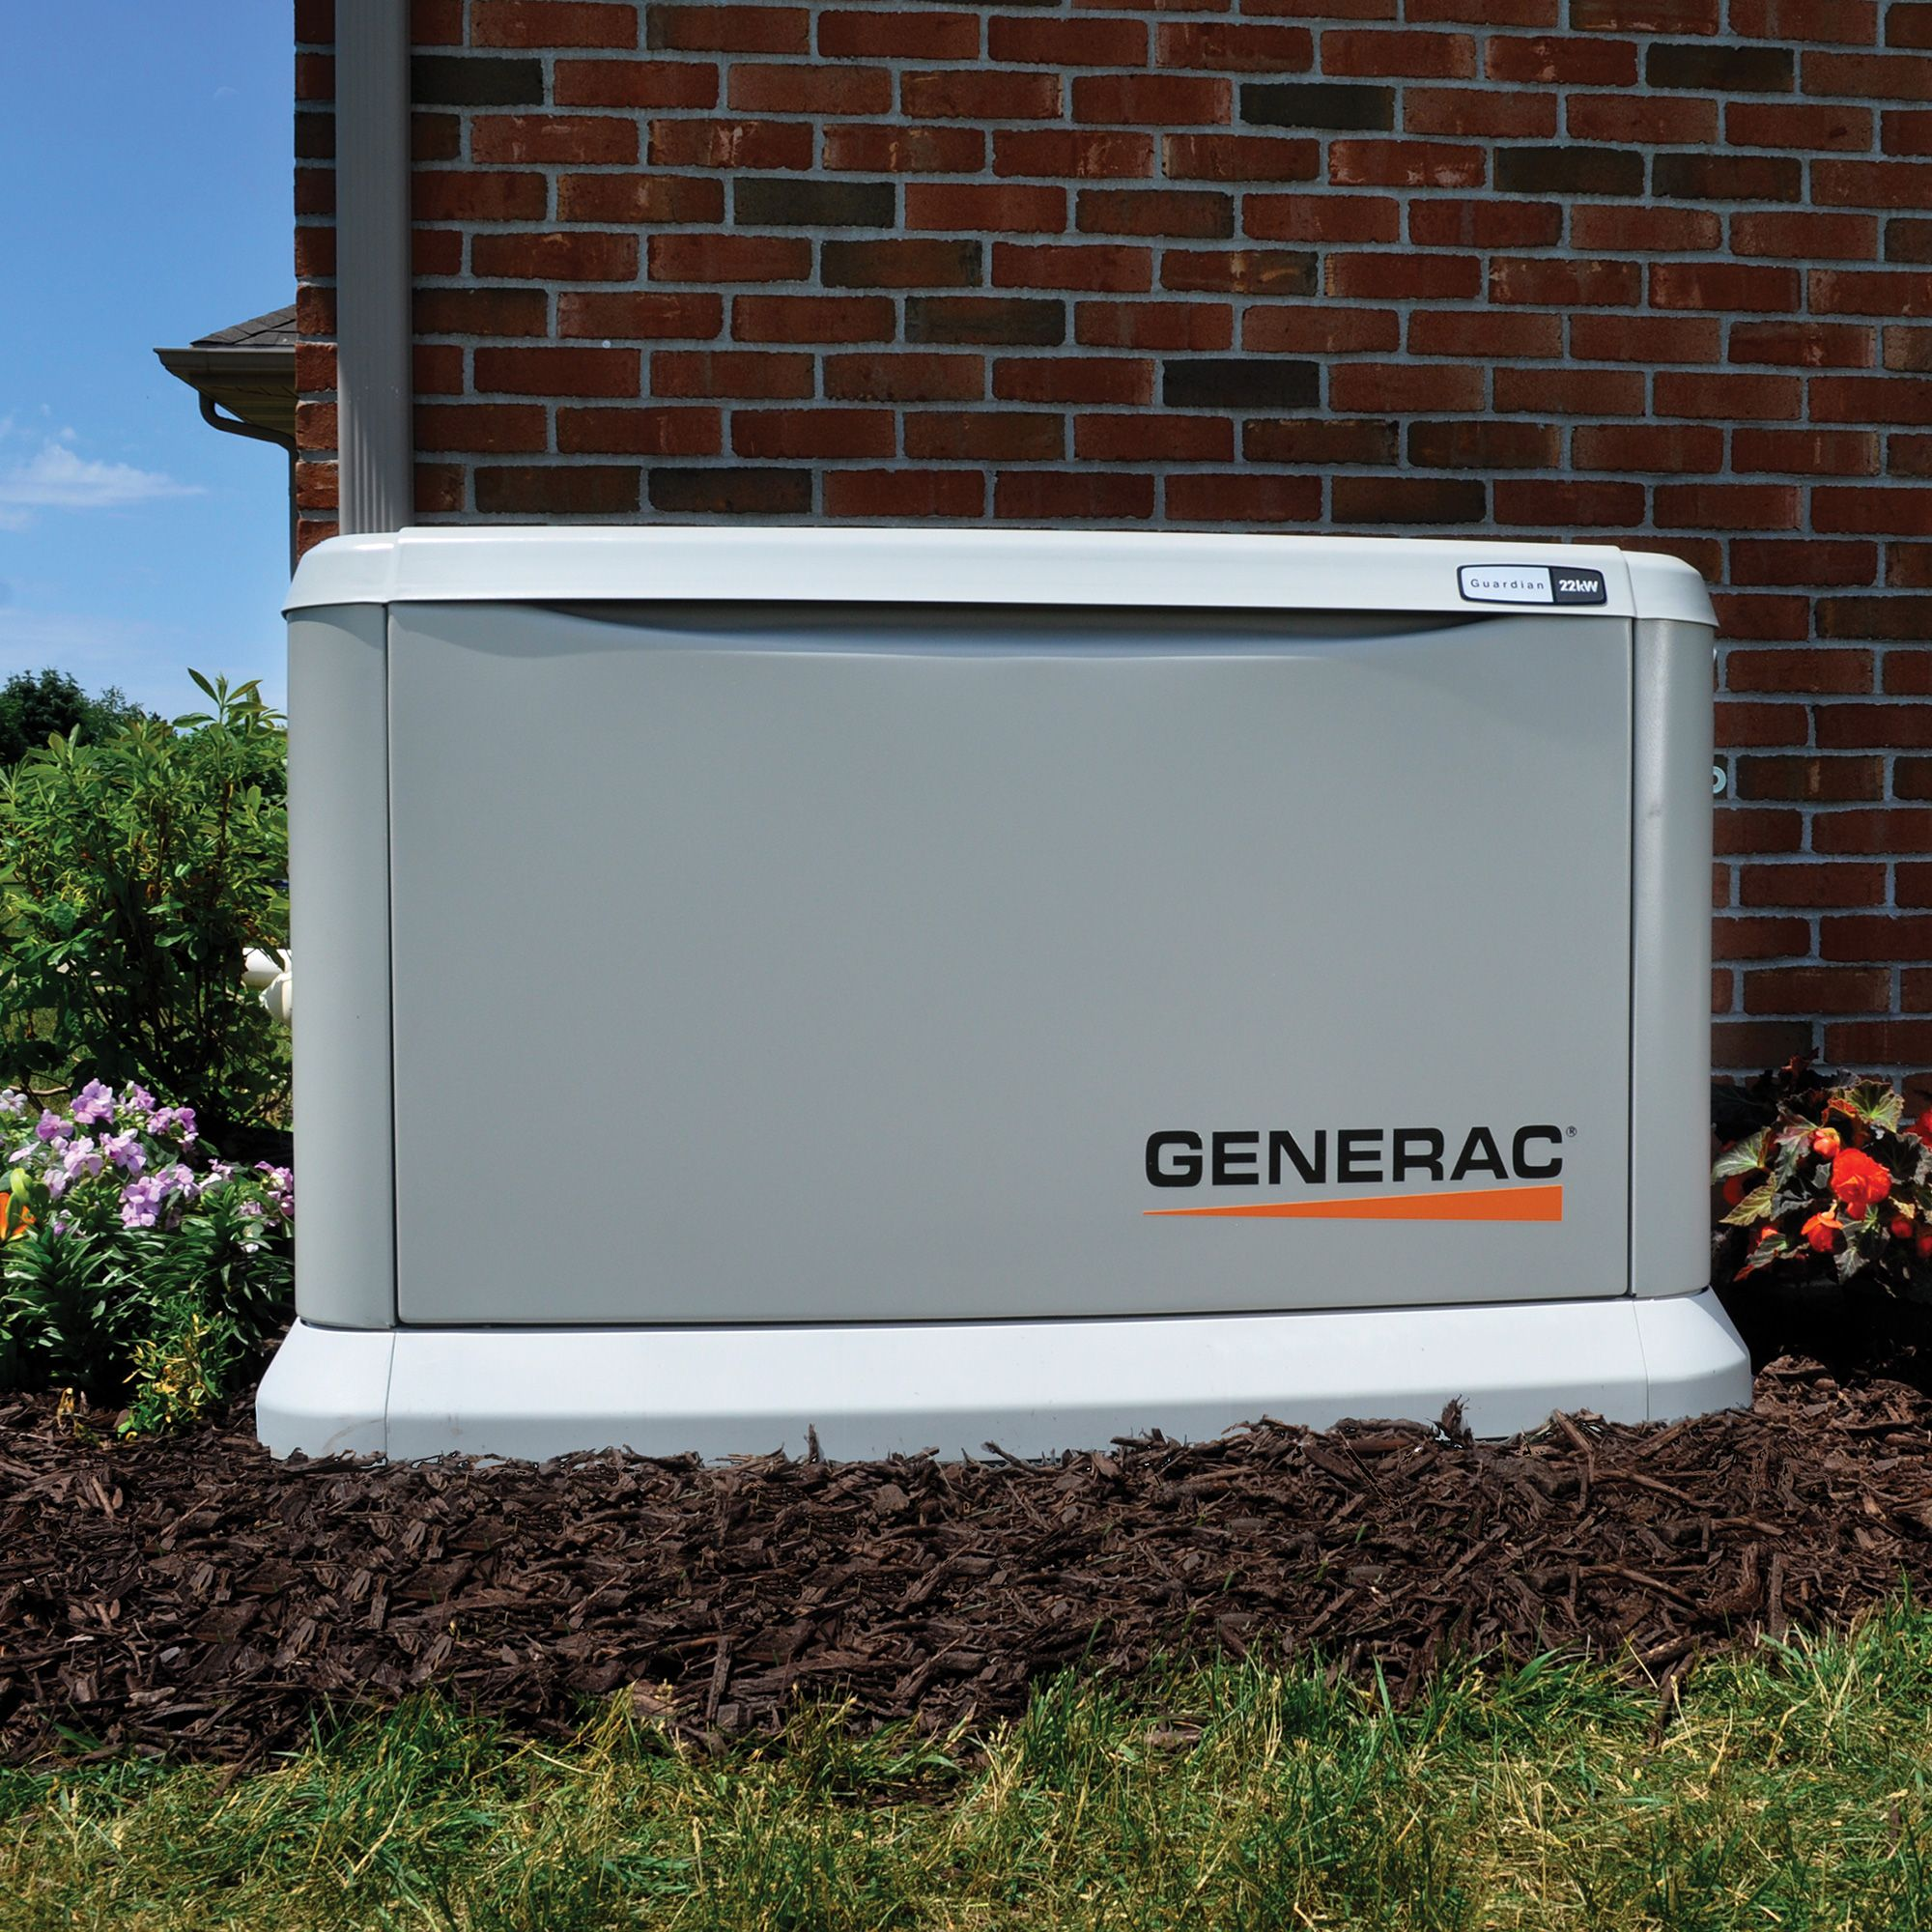 Generac Guardian Series 22kw Stand Alone Generator Call Us Today For Sales Or Support Standby Generators Generator House Central Air Conditioning Units